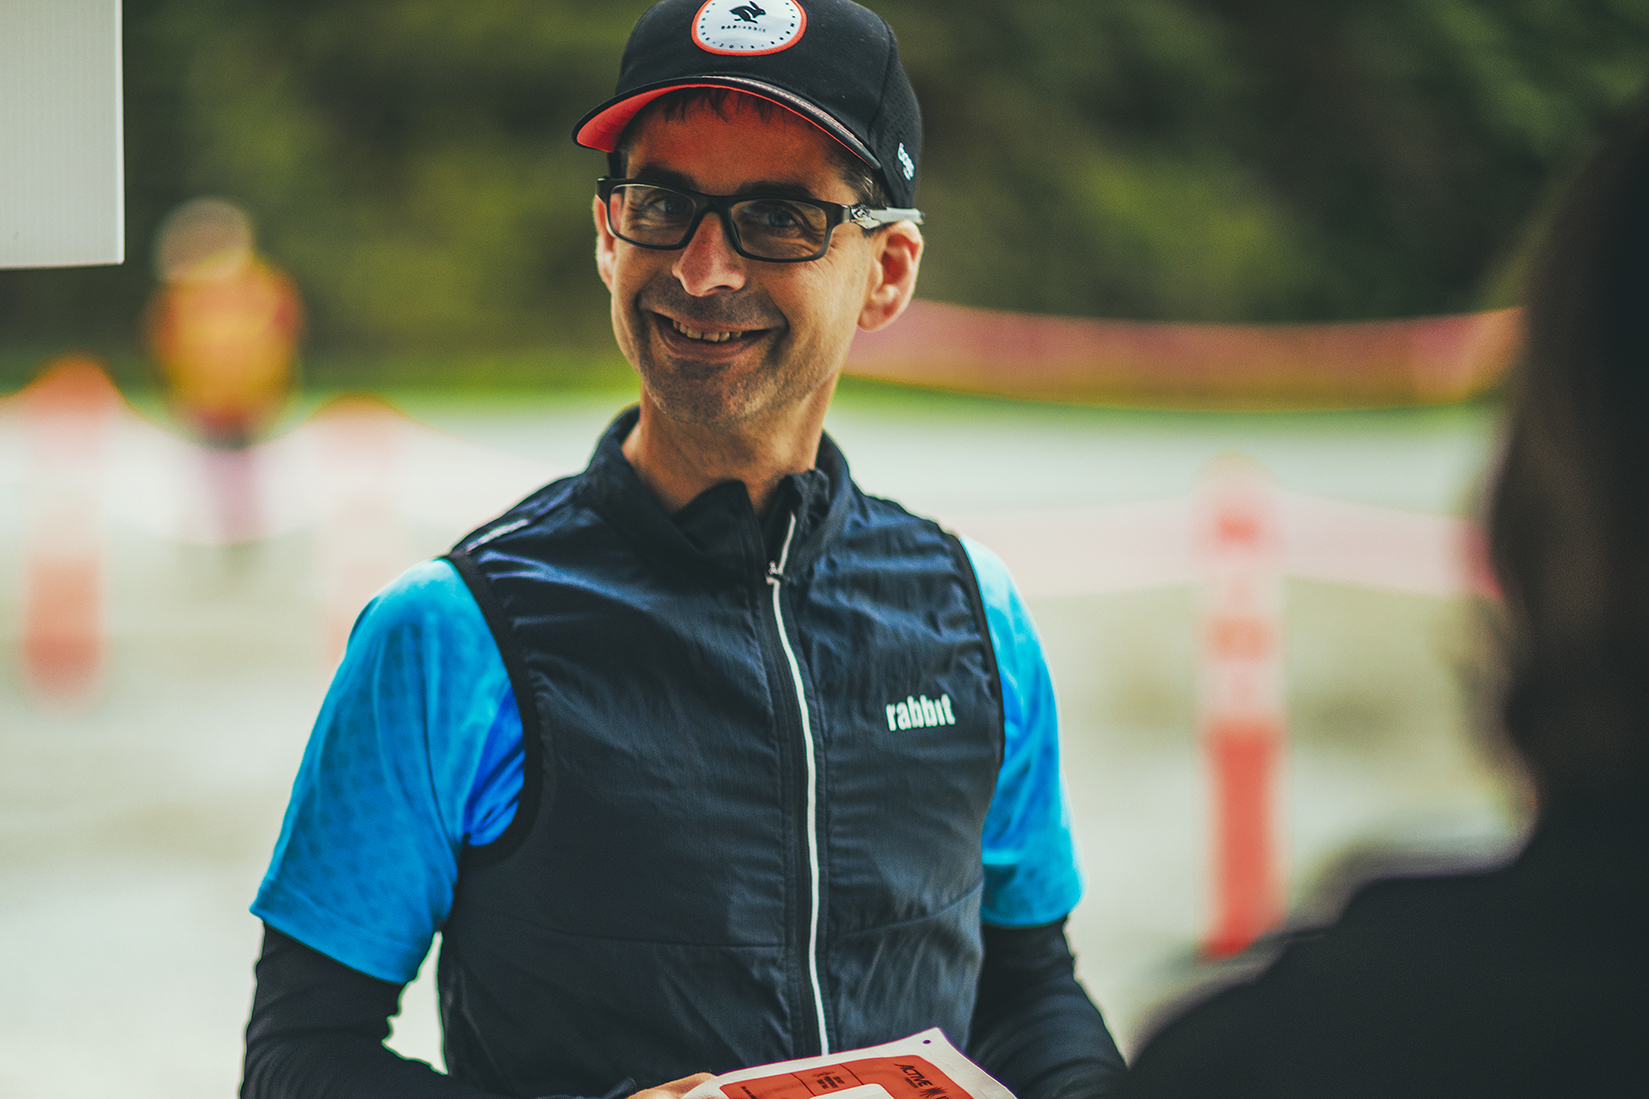 Fraser Valley Trail Races - Bear Mountain - IMG_1282 by Brice Ferre Studio - Vancouver Portrait Adventure and Athlete Photographer.jpg